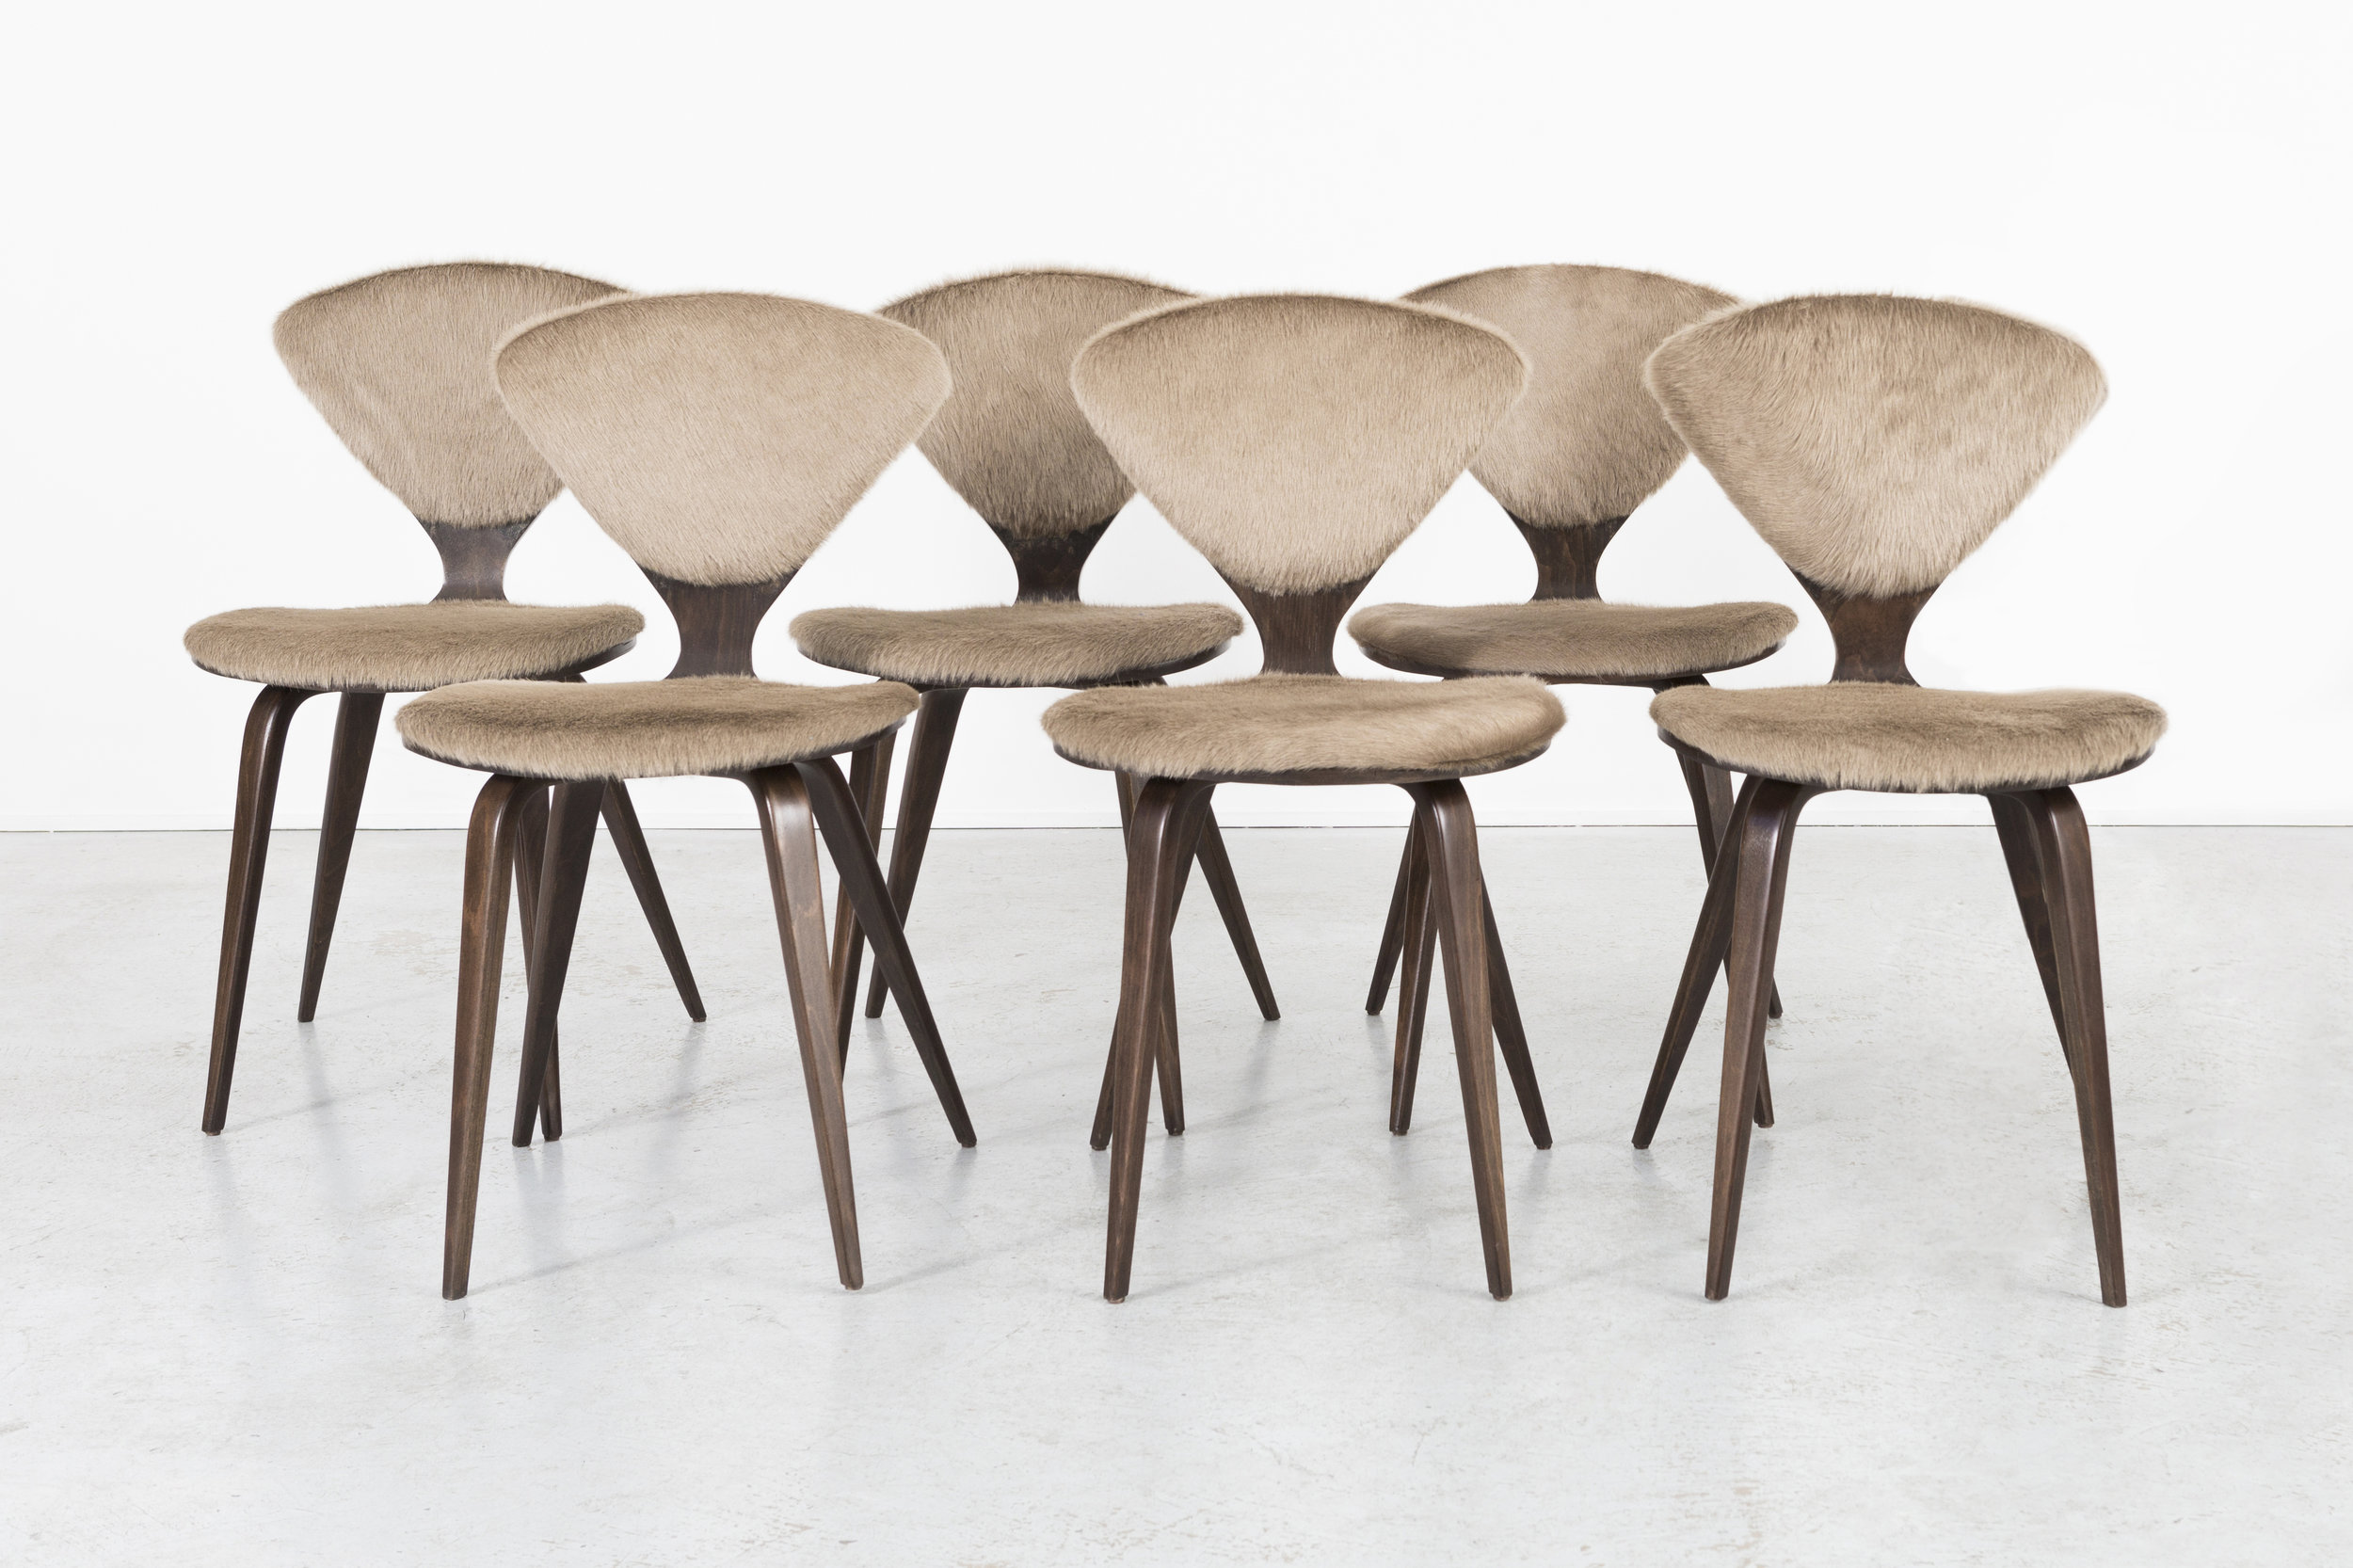 SET OF NORMAN CHERNER FOR PLYCRAFT DINING CHAIRS U2014 MATTHEW RACHMAN GALLERY